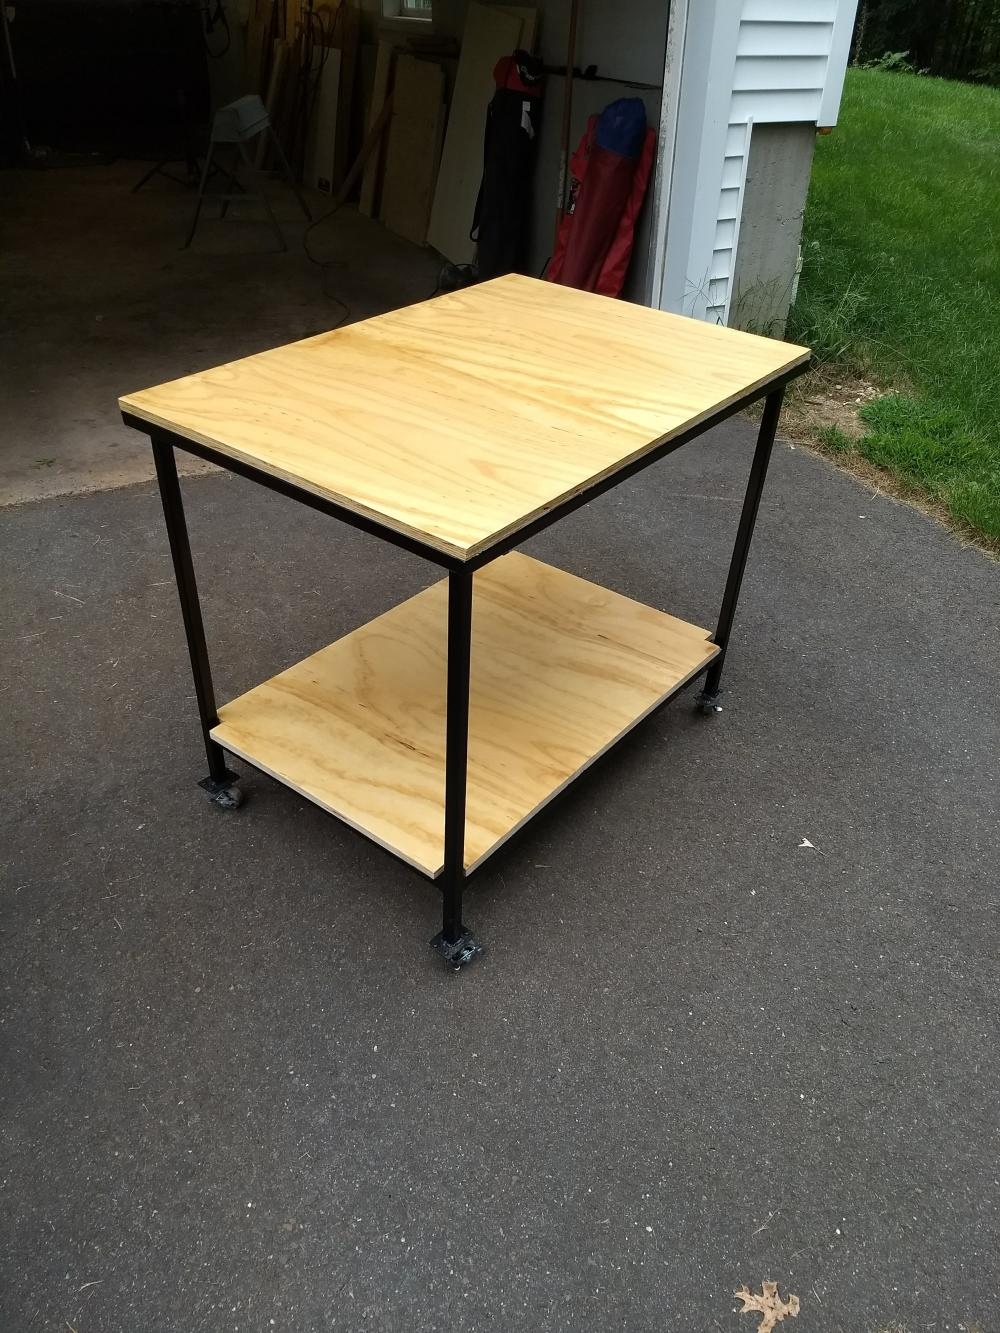 Name:  Laundry table.jpg Views: 875 Size:  218.6 KB